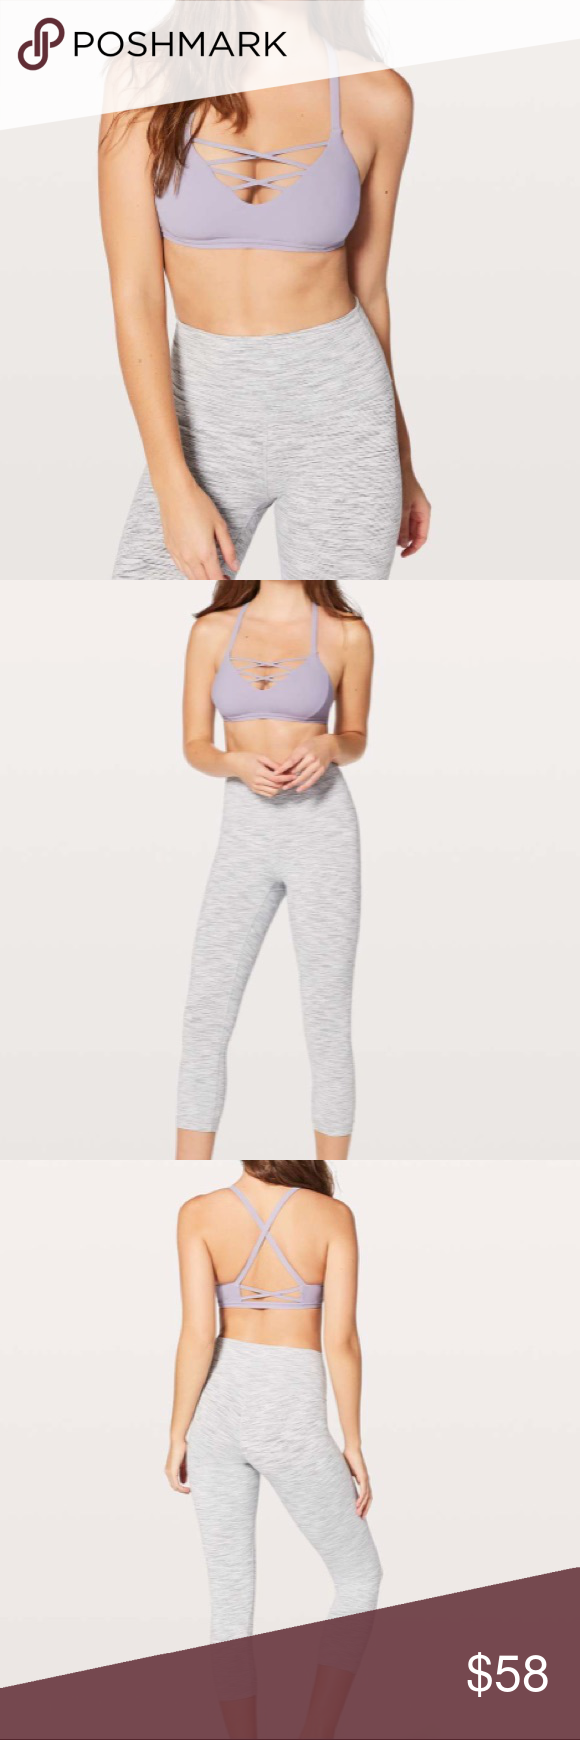 1de2f09f3d NEW • Lululemon • Laced with Intent Sports Bra - Lululemon - Laced with Intent  Sports